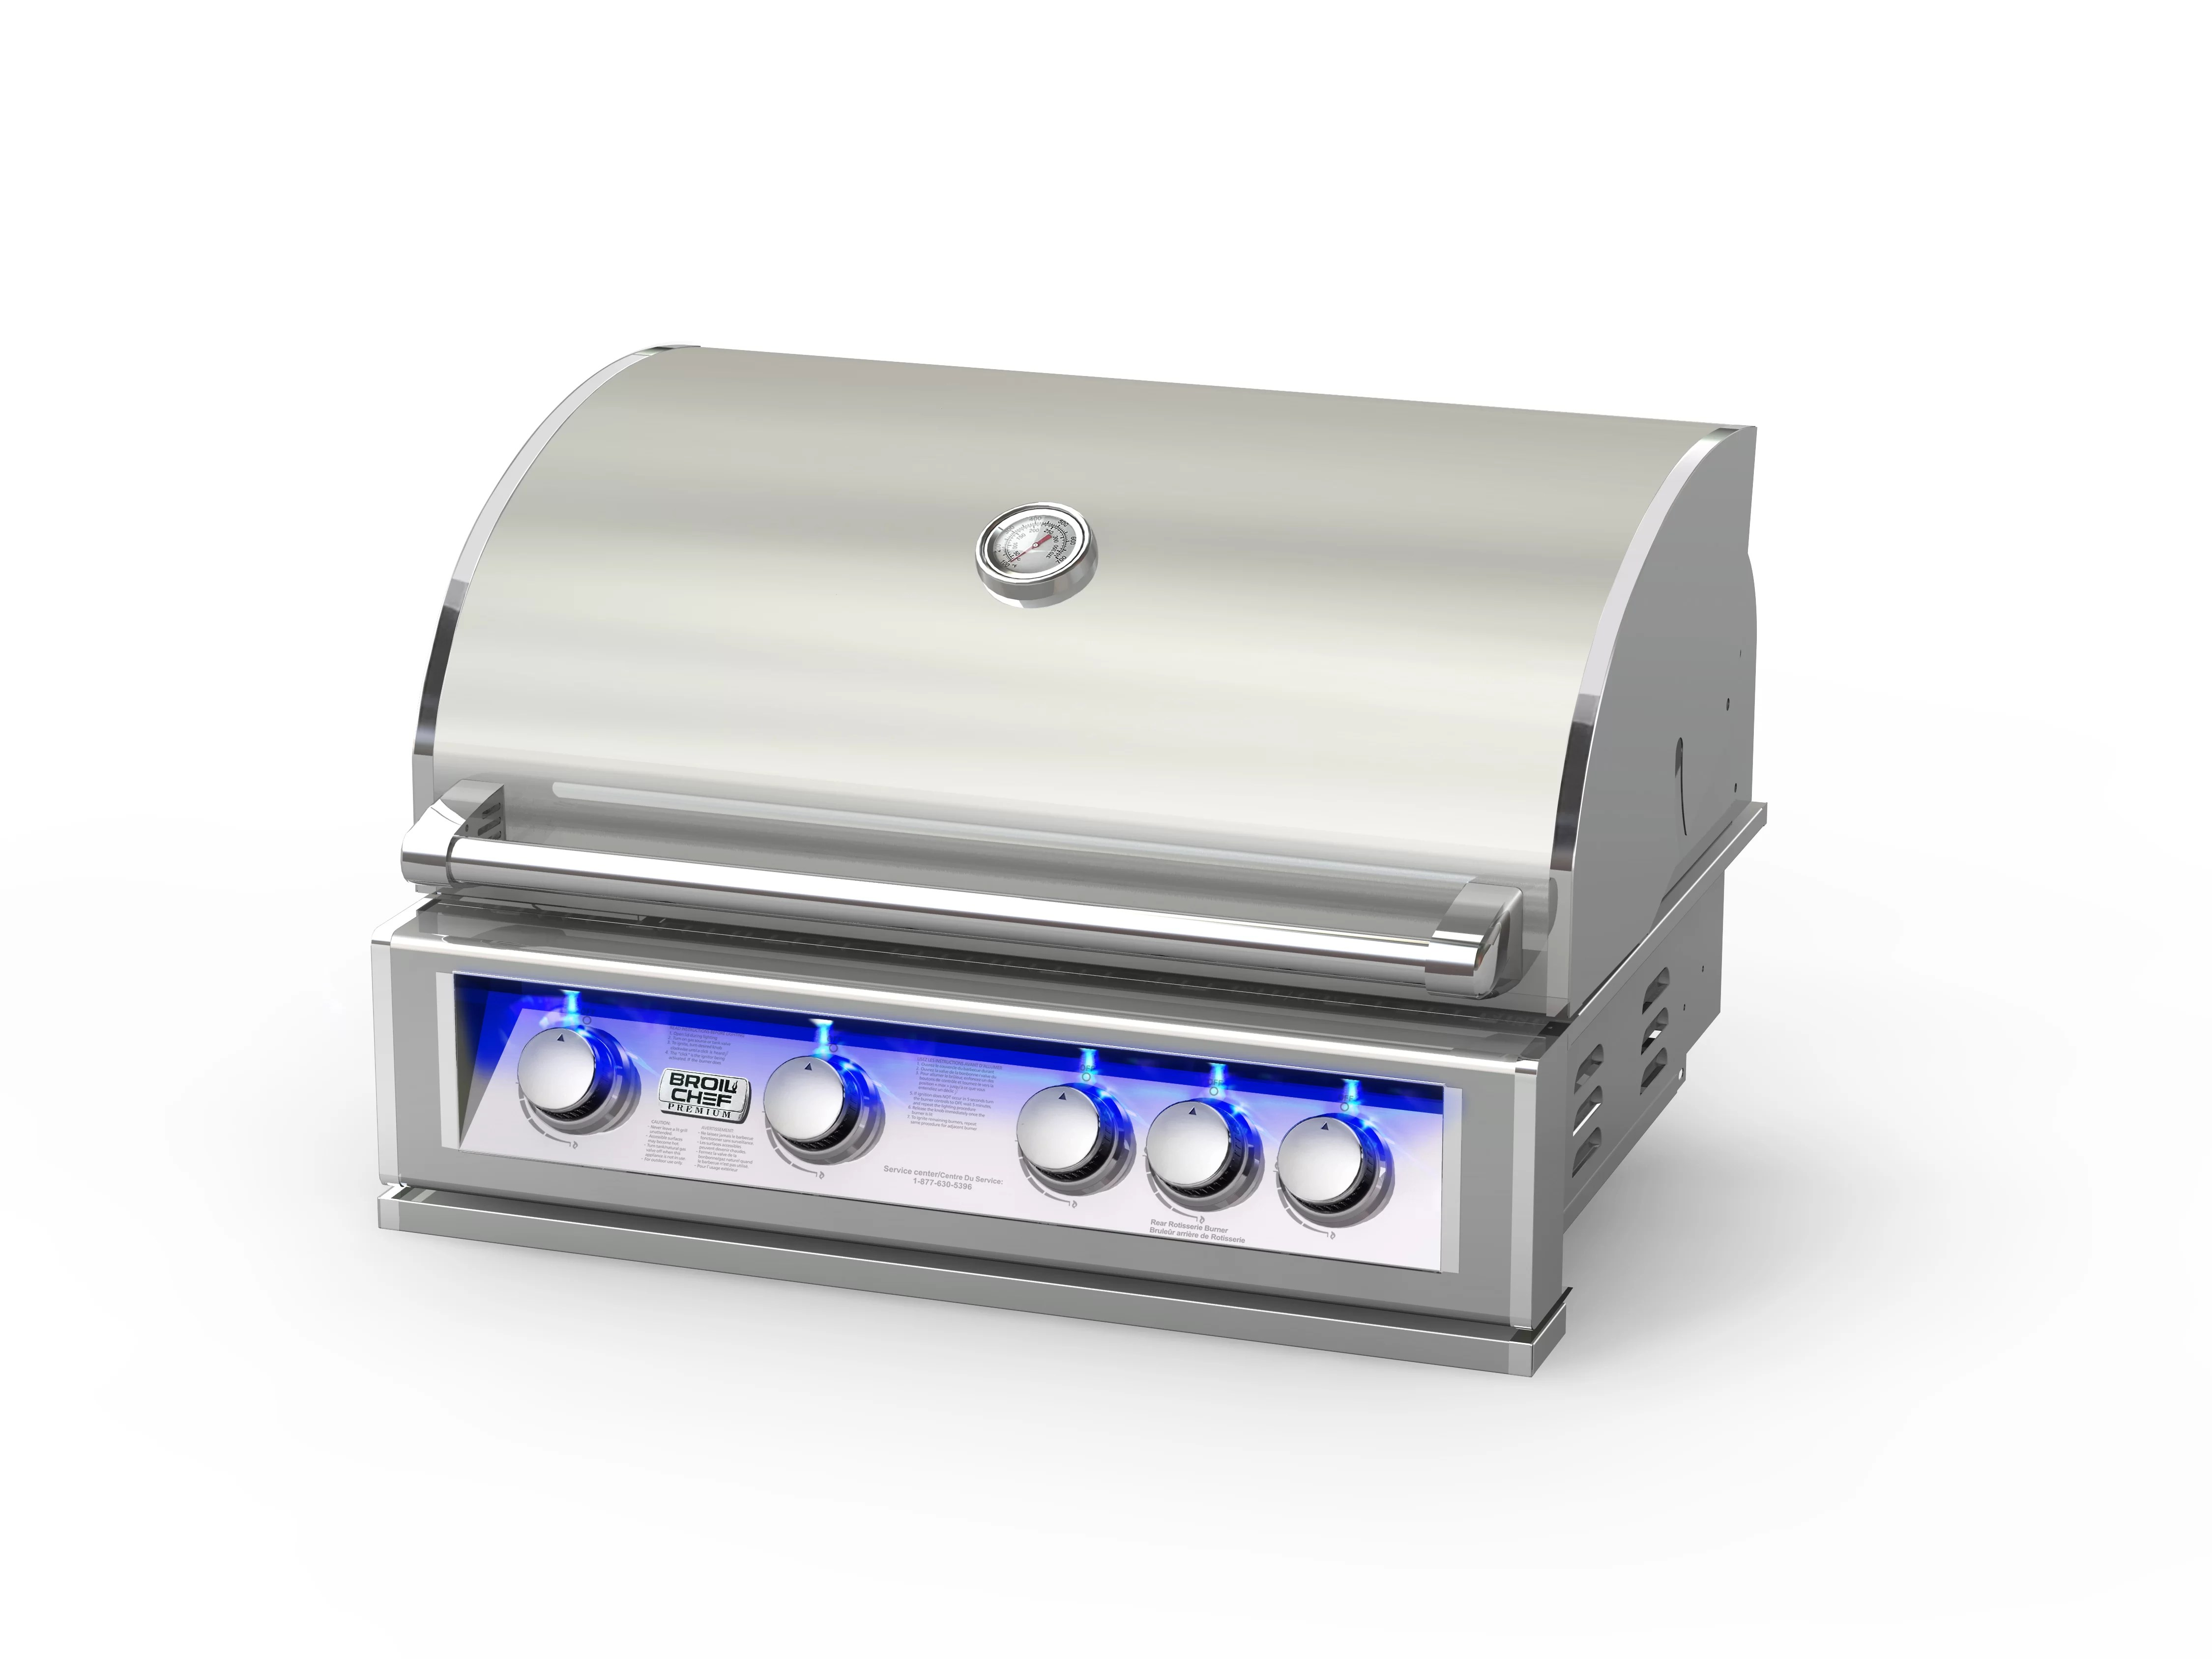 Broilchef Paramount 4 Burner Built In Gas Grill